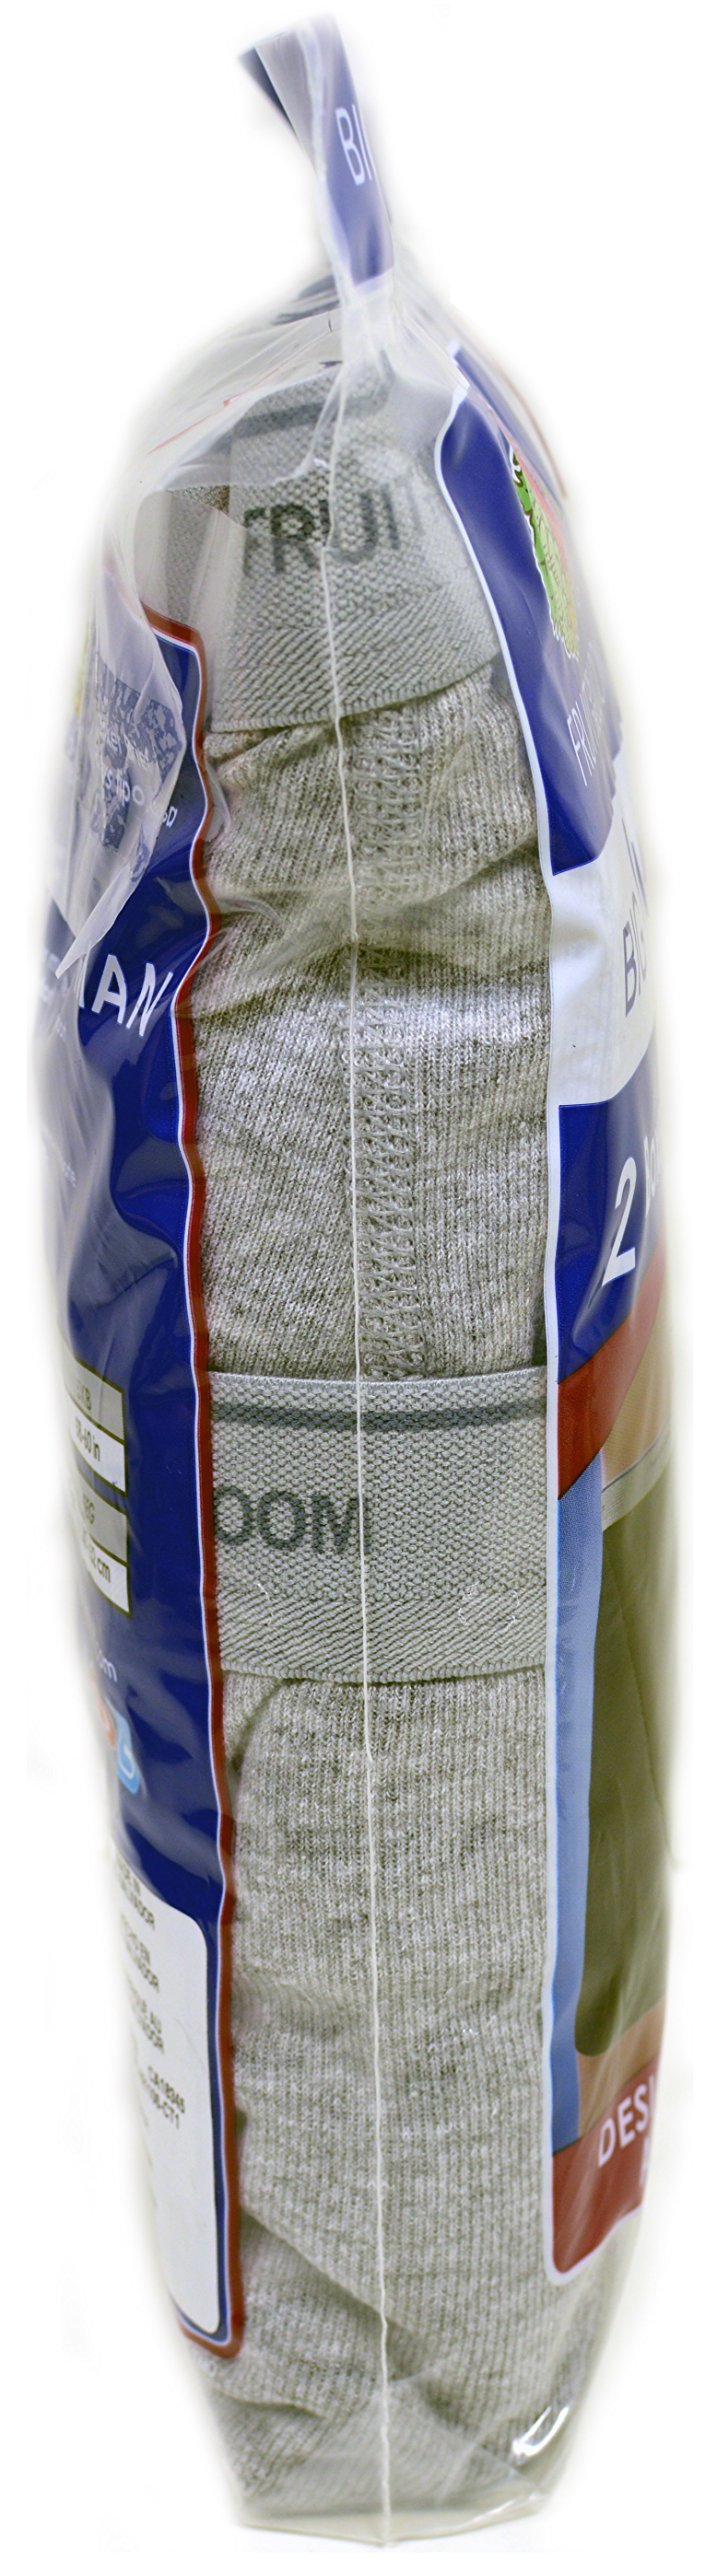 12 Fruit of the Loom Big Man Boxer Briefs (5X) by Fruit of the Loom (Image #1)